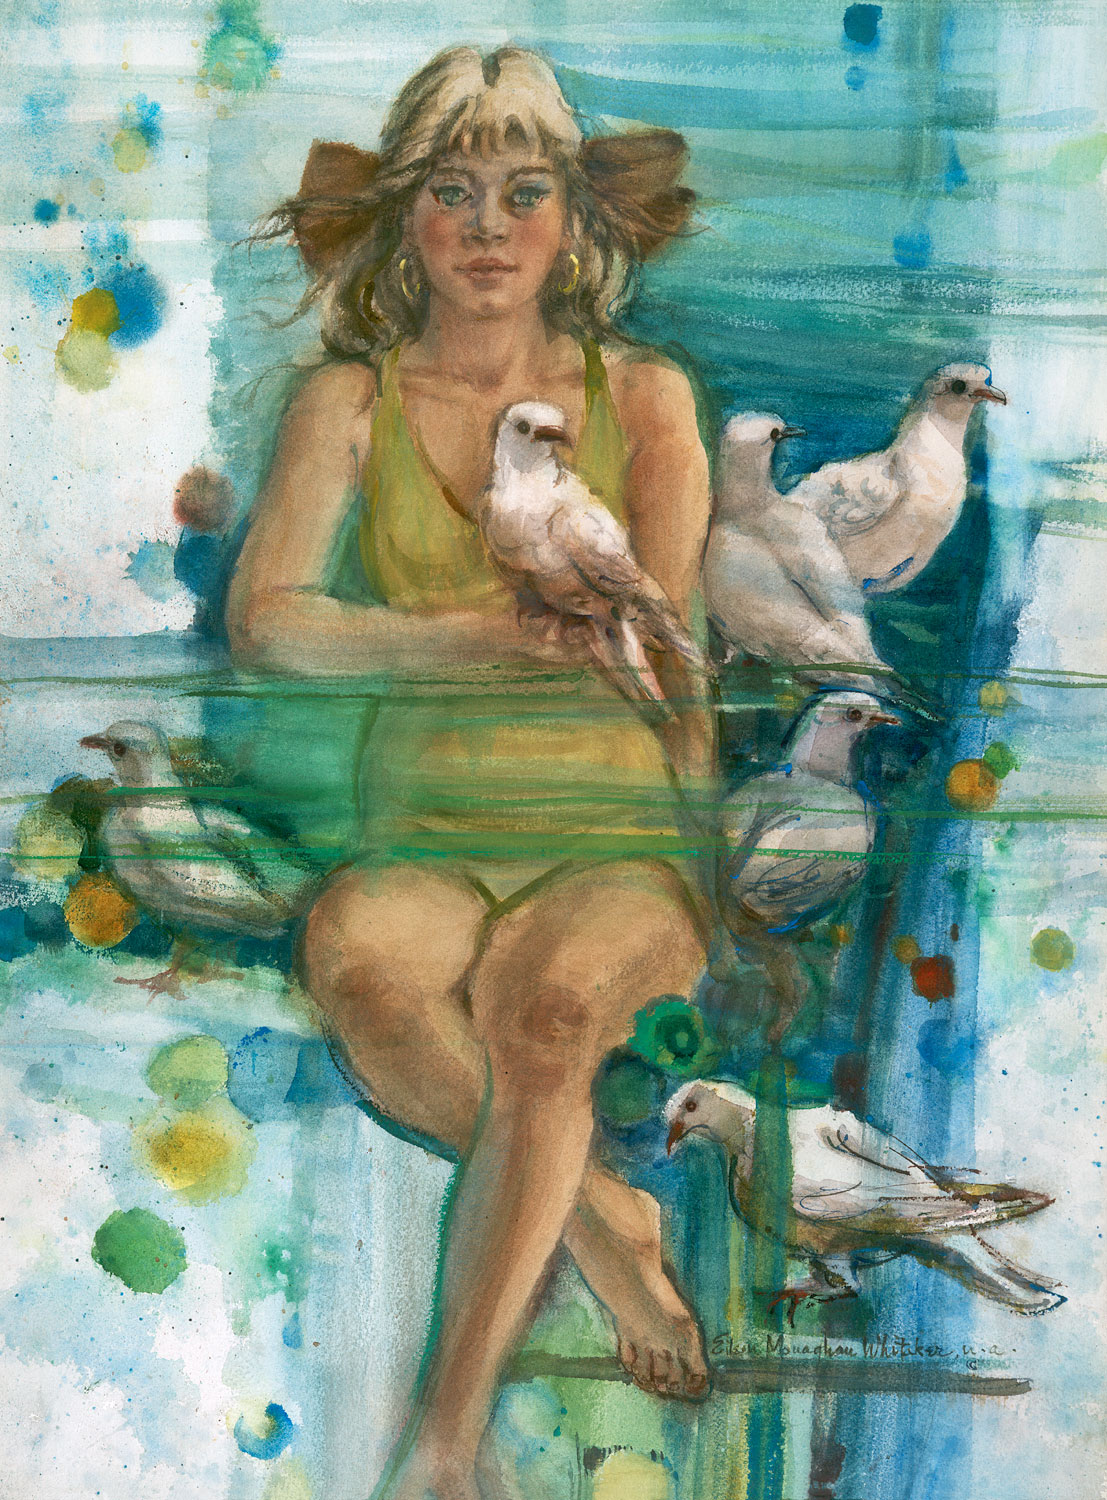 """Dove's Playmate"" 1970s © Eileen Monaghan Whitaker 30x22 inches Watercolor"